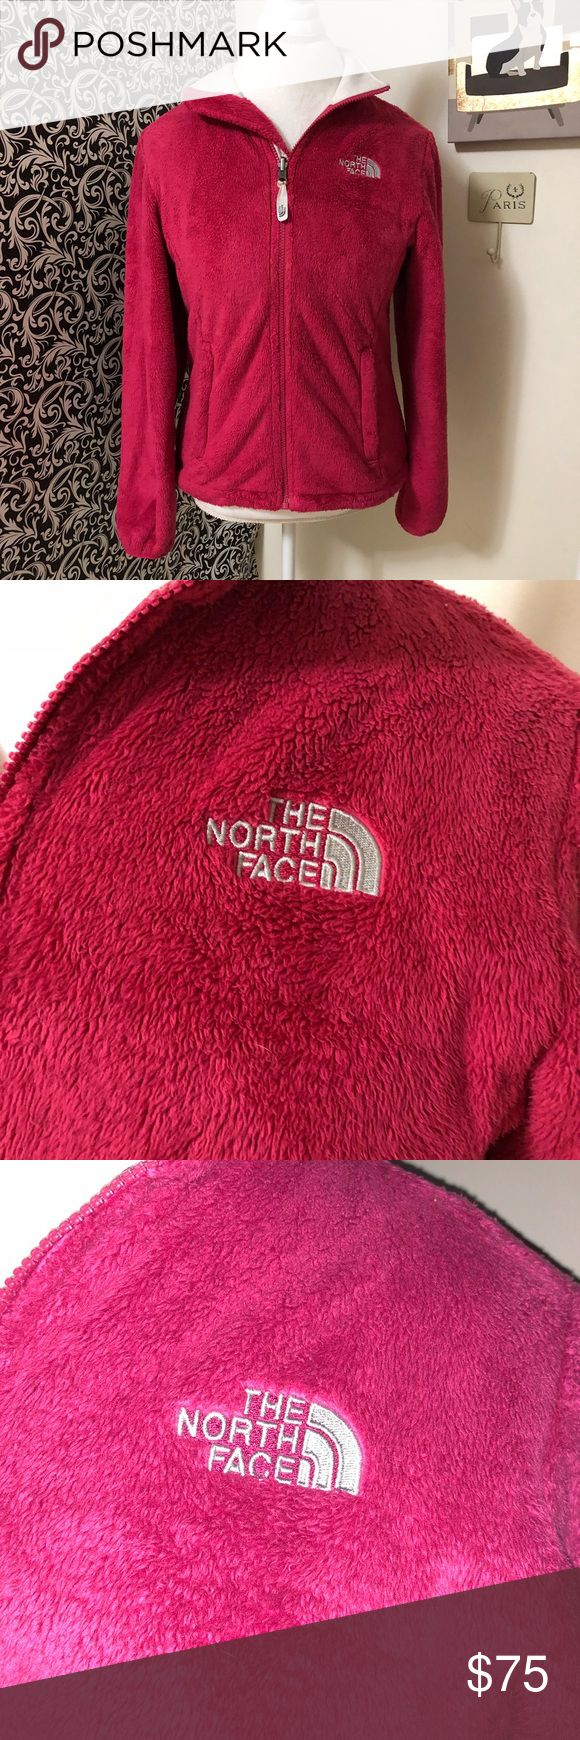 Maroon north face fuzzy zip up Beautiful north face zip up jacket. In perfect condition. Size small. Fits true to size. Jacket is a maroon pink in person but the pictures make it look red. North Face Jackets & Coats